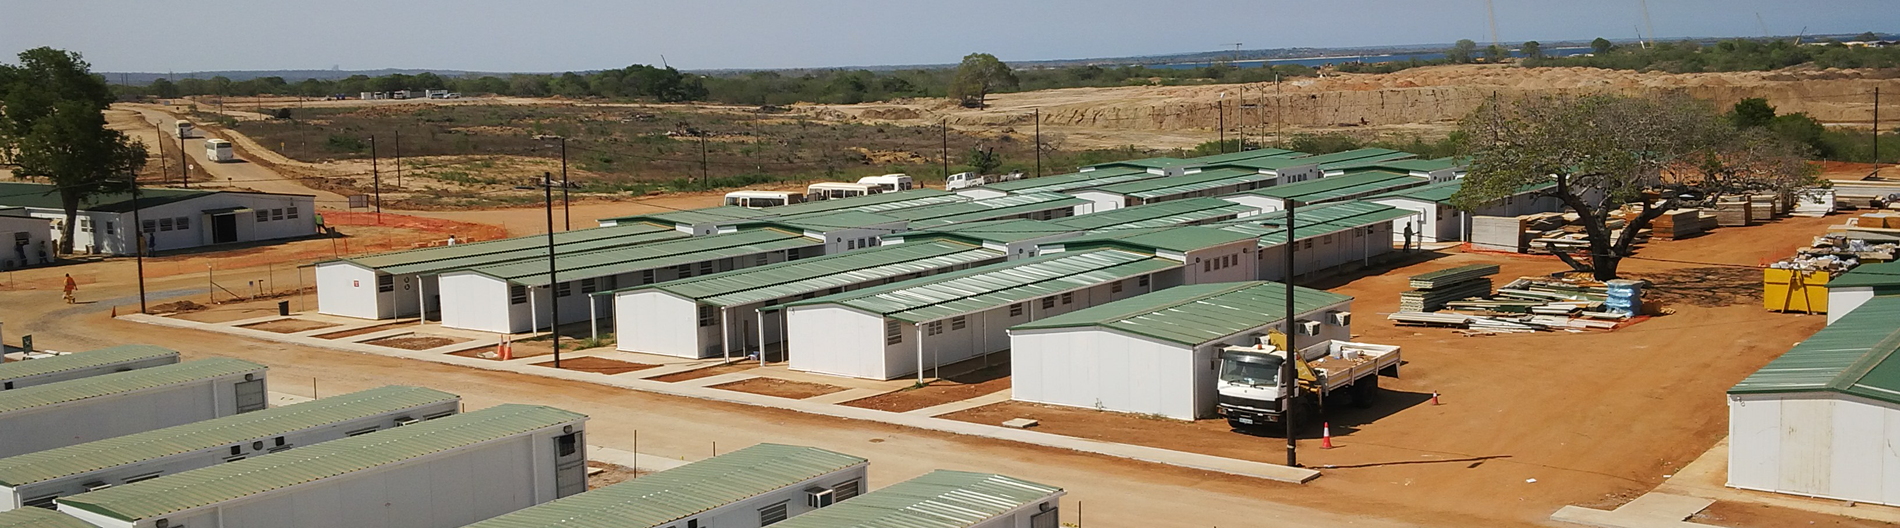 rented modular buildings for remote sites. Remote portable toilets. Remote camp container storage. Long-term rental containers for hire. Remote healthcare facilities to rent.